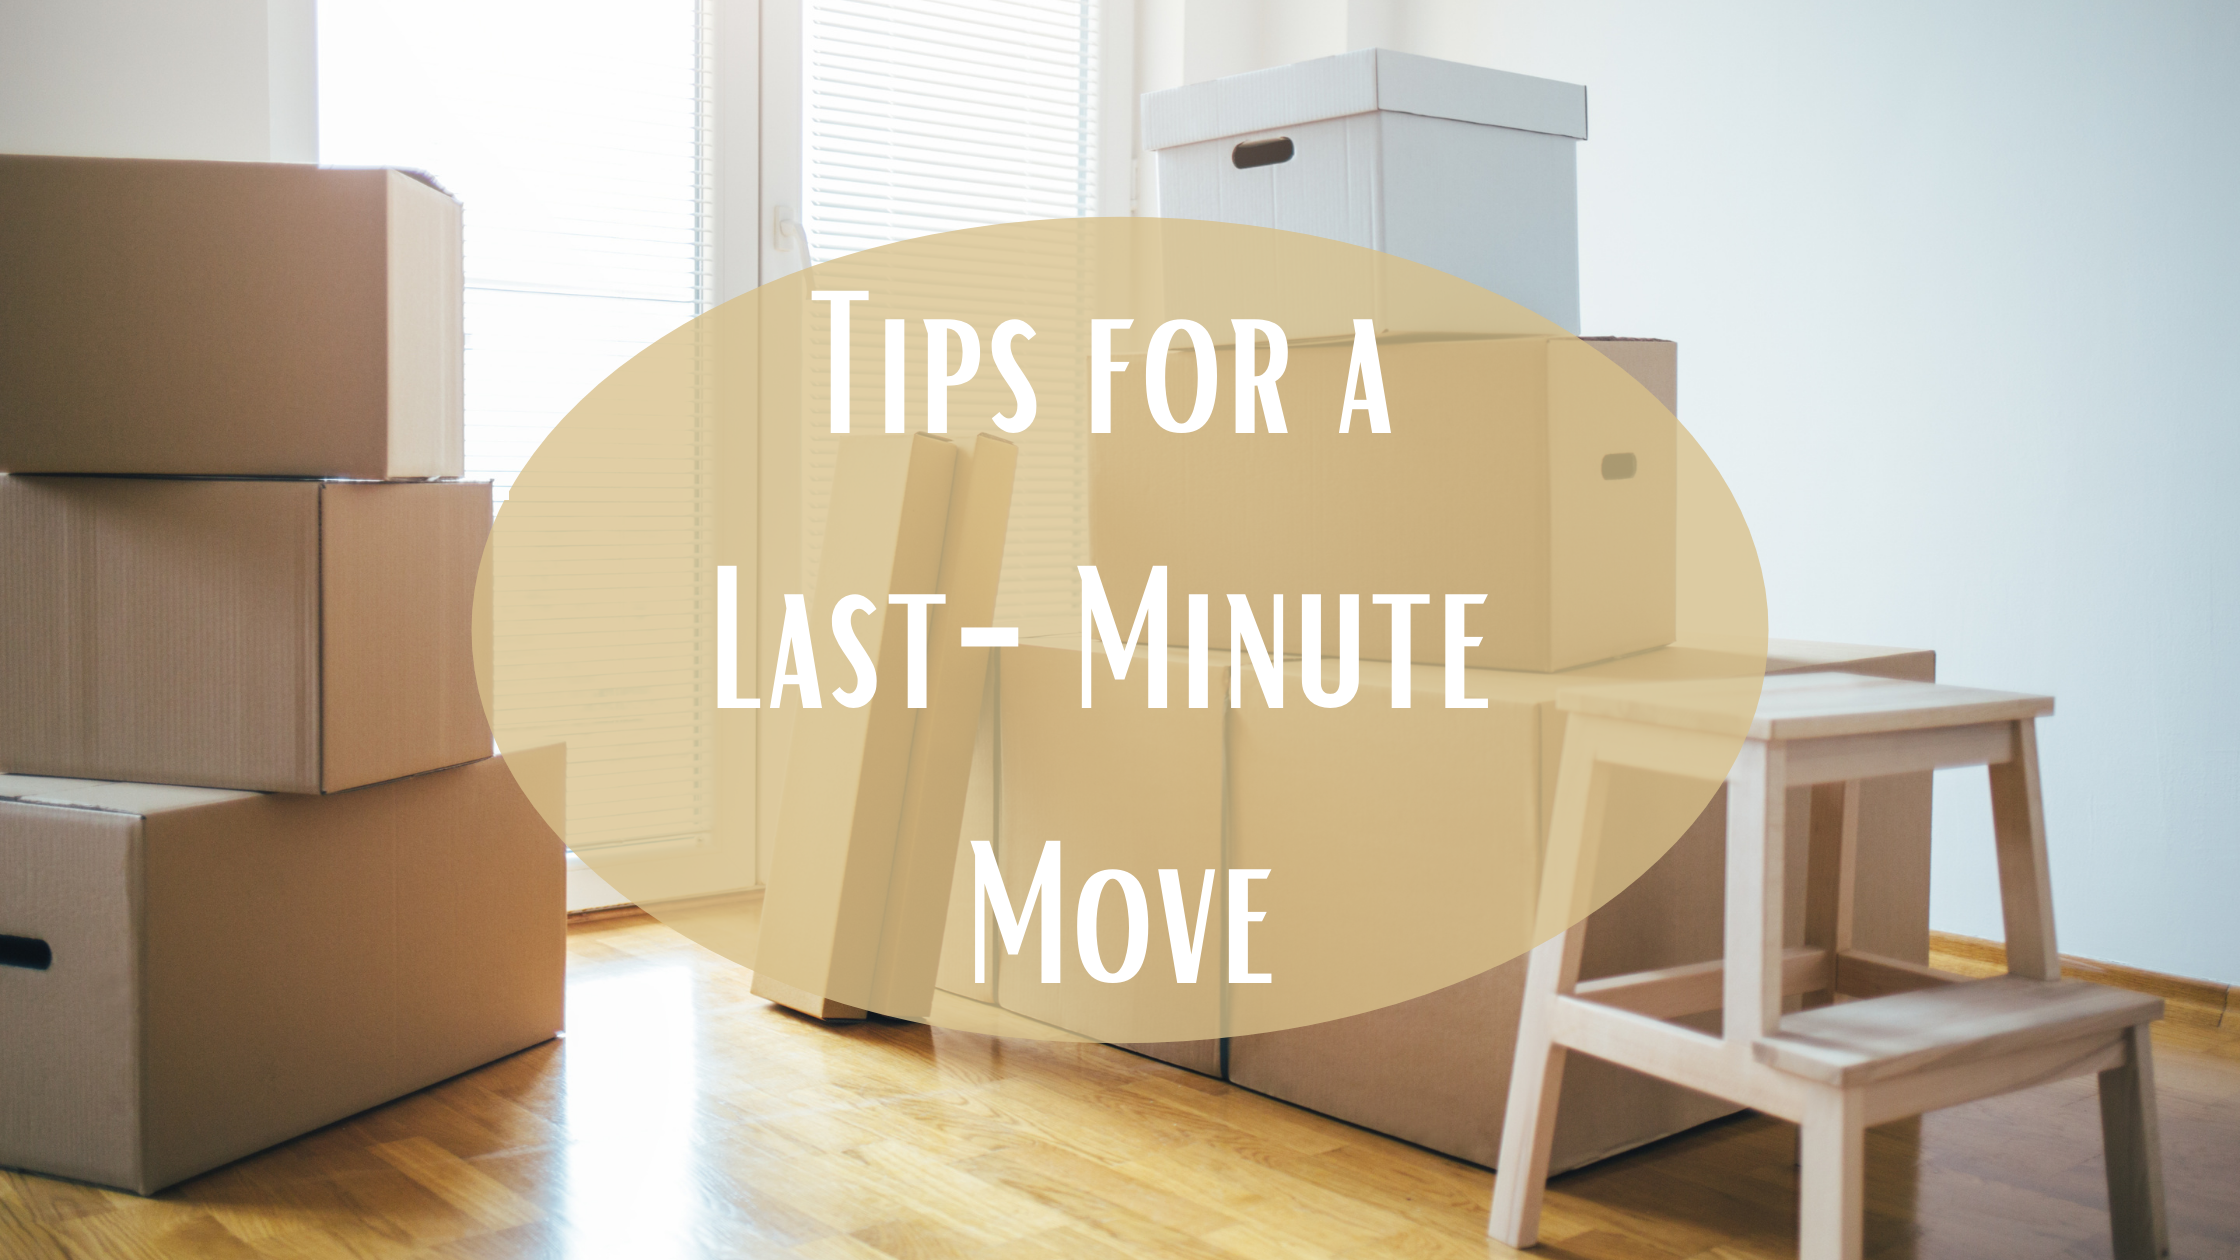 Tips to Help with a Last-Minute Move